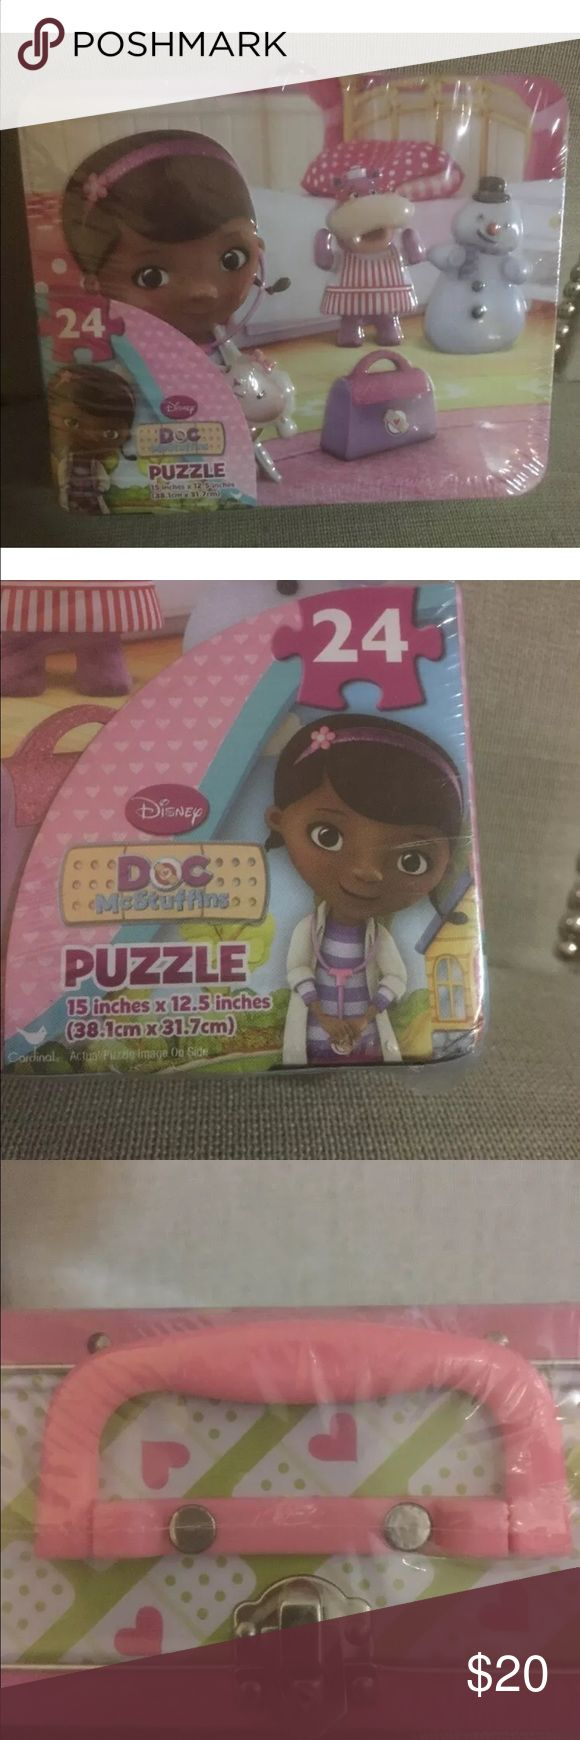 Doc mc stuffins lunch box Doc mc stuffins lunc box with puzzle in box Accessories Bags